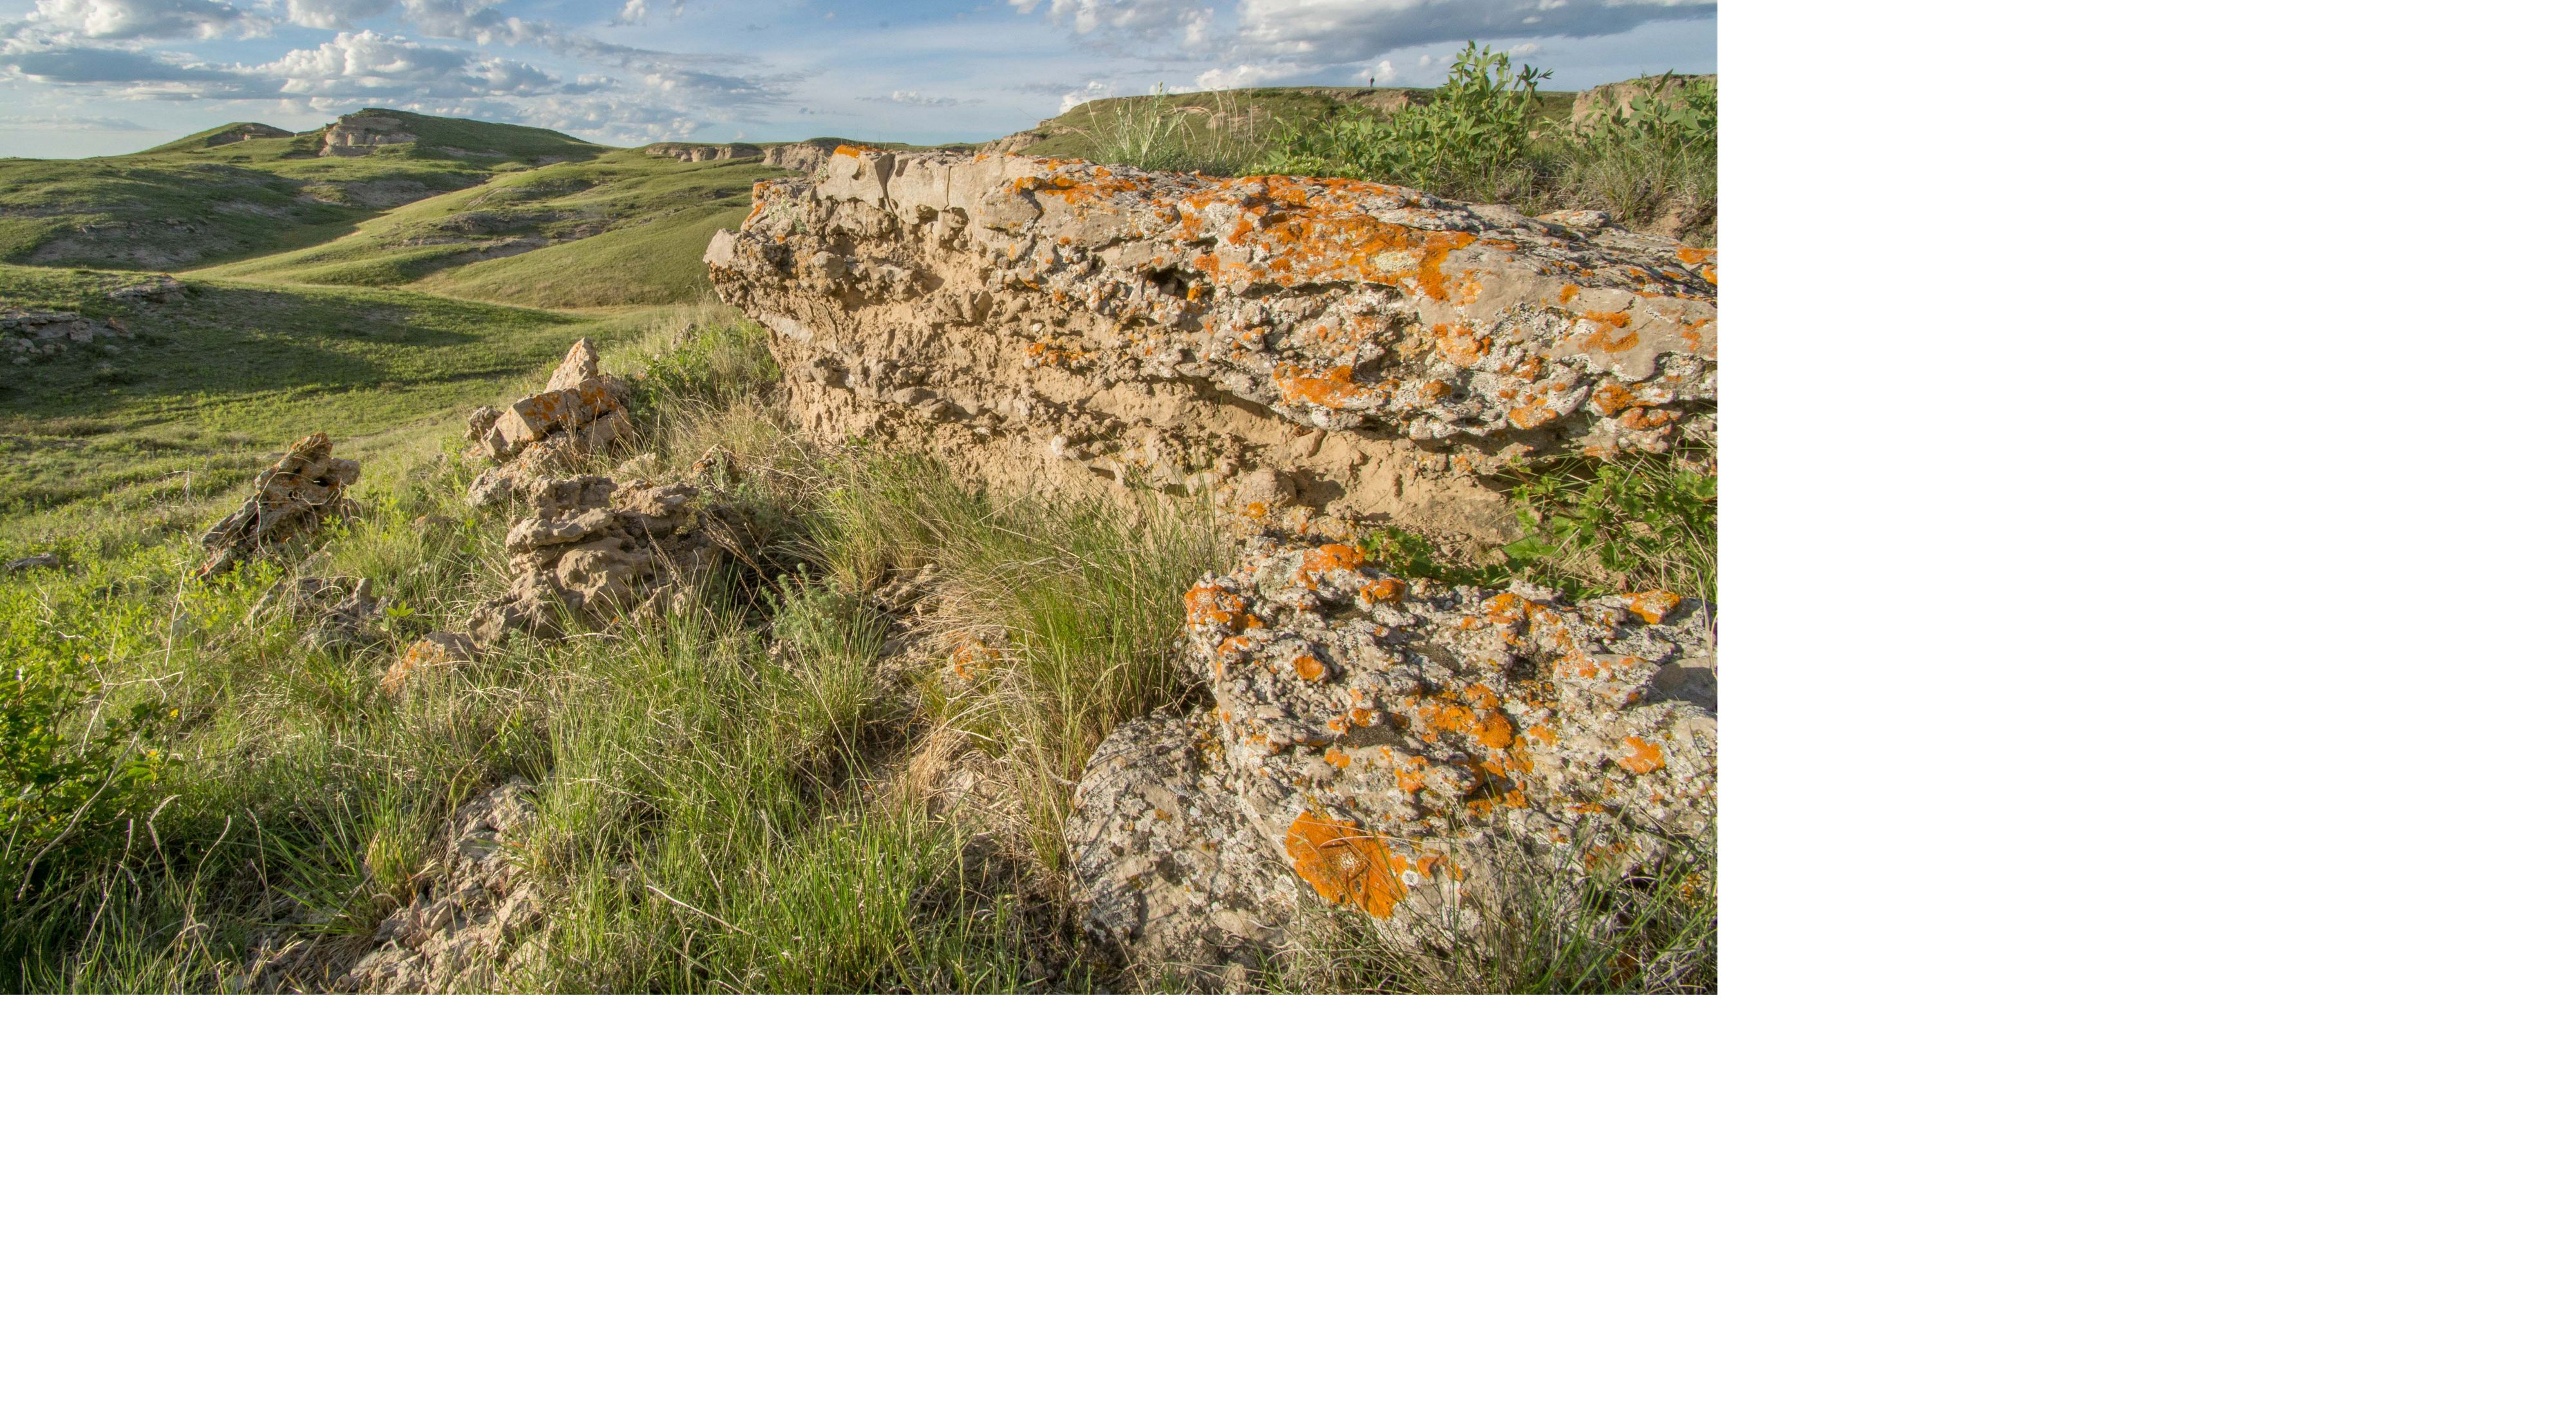 Rock escarpments in a rolling, native grassland